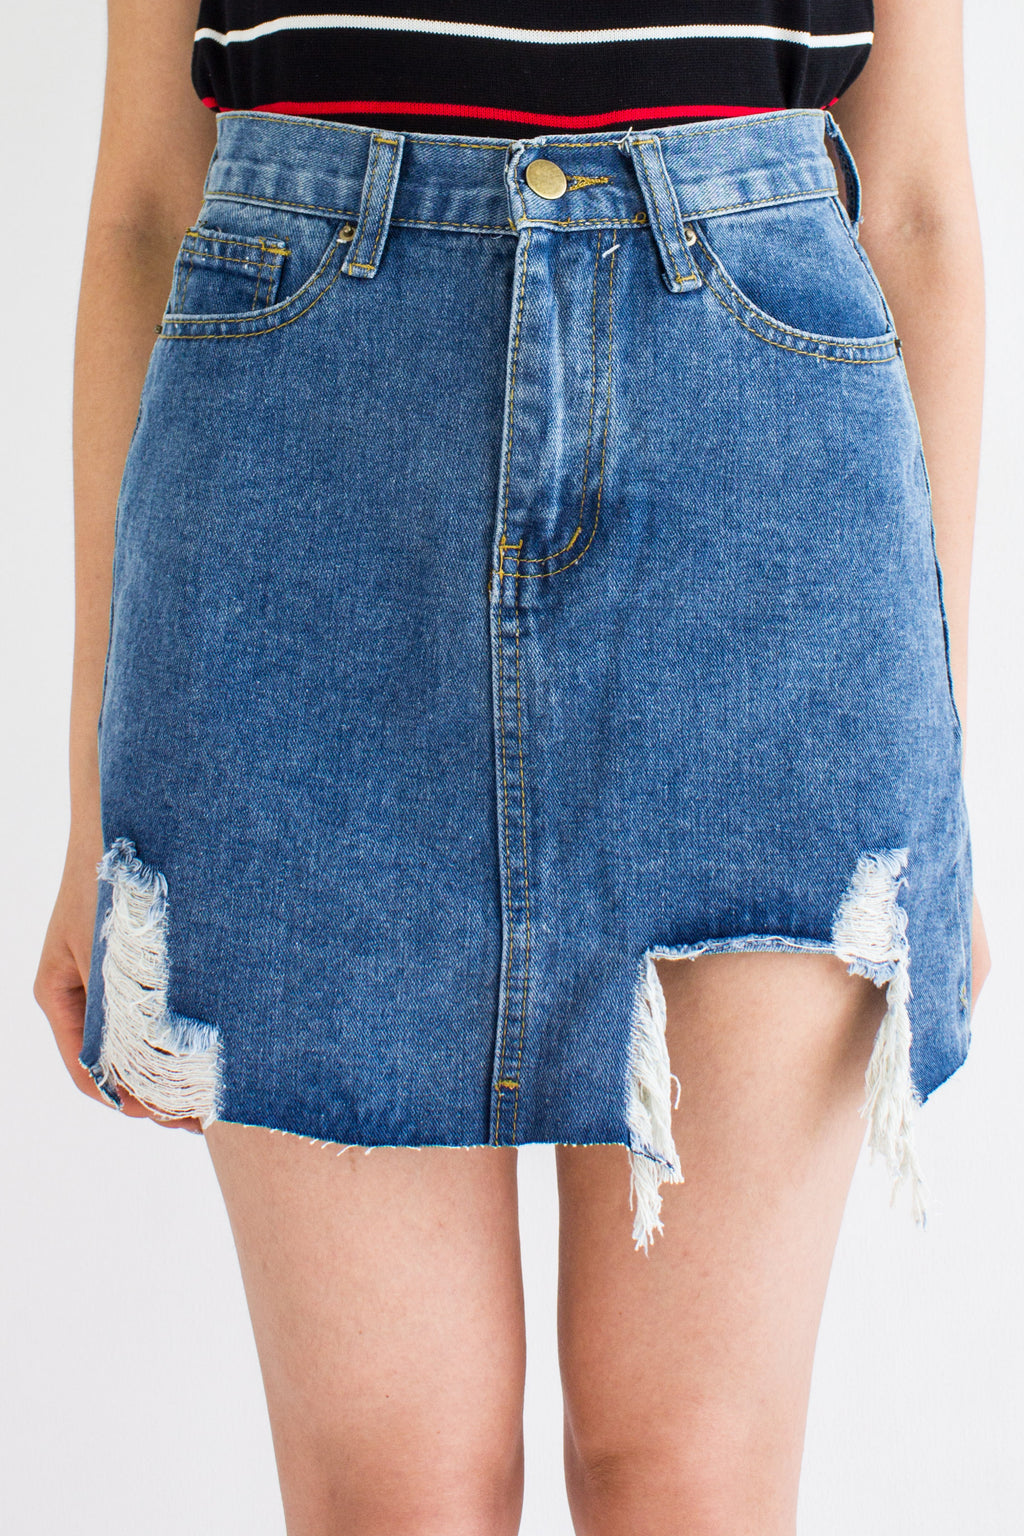 Shed A Tear Denim Mini Skirt in Dark Blue - BOTTOMS - Peep Boutique